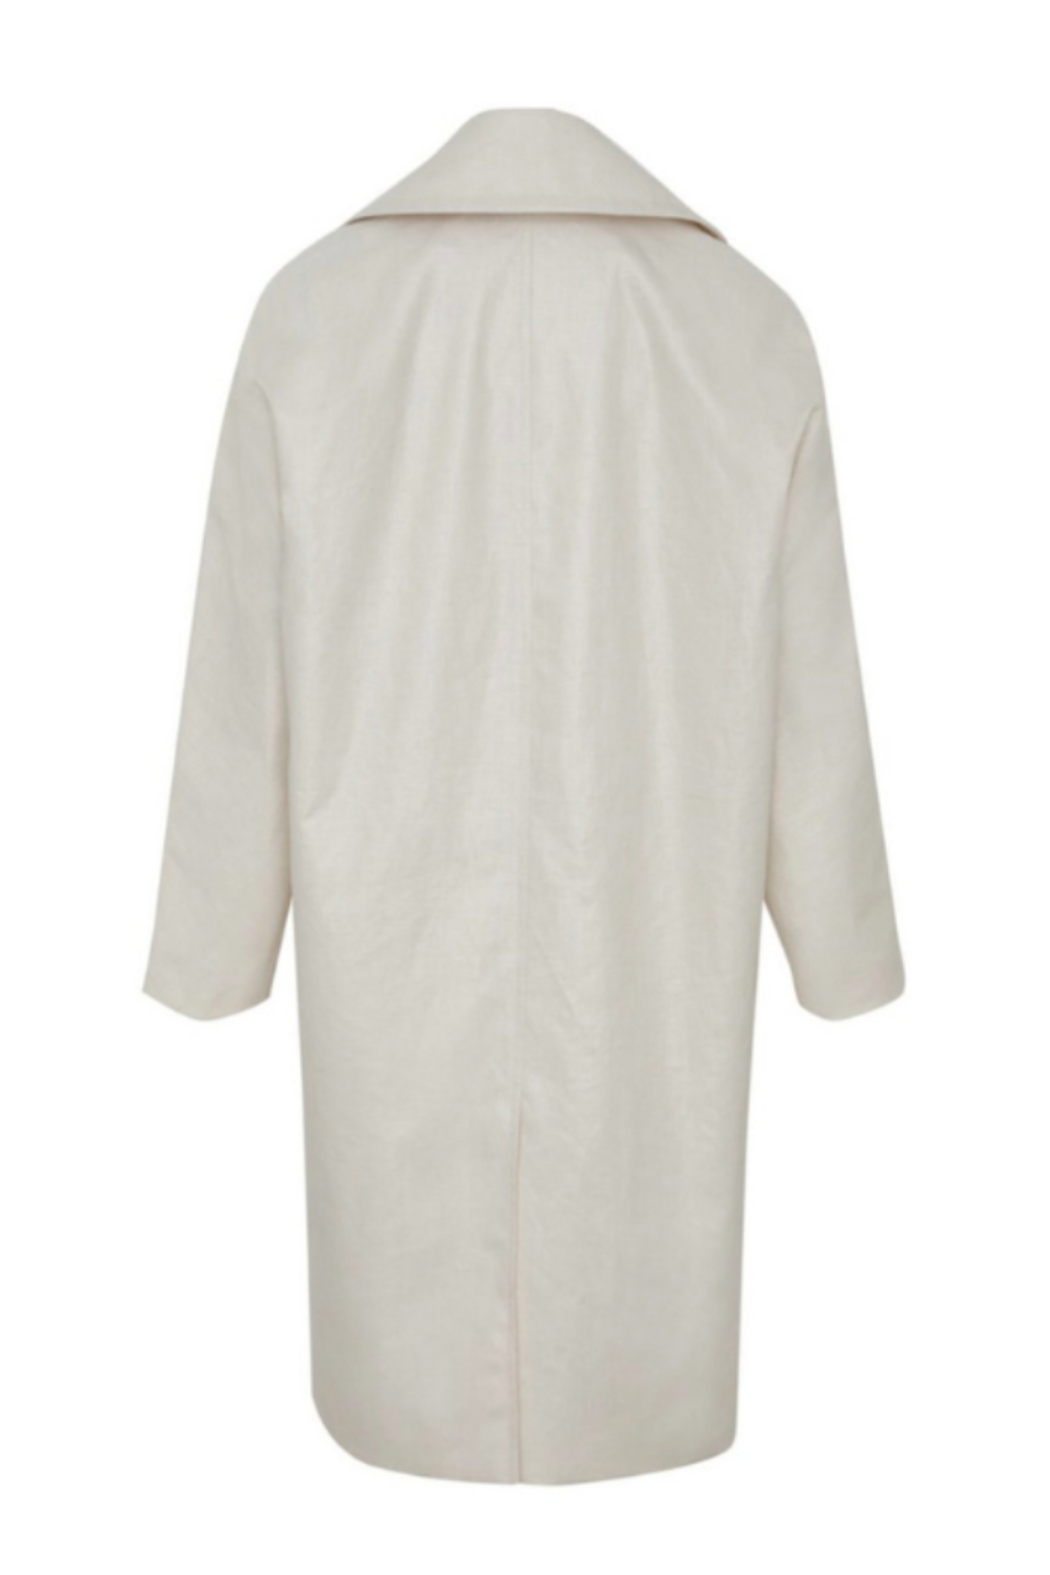 Martin Grant LINEN COCOON COAT - Back Cropped Image